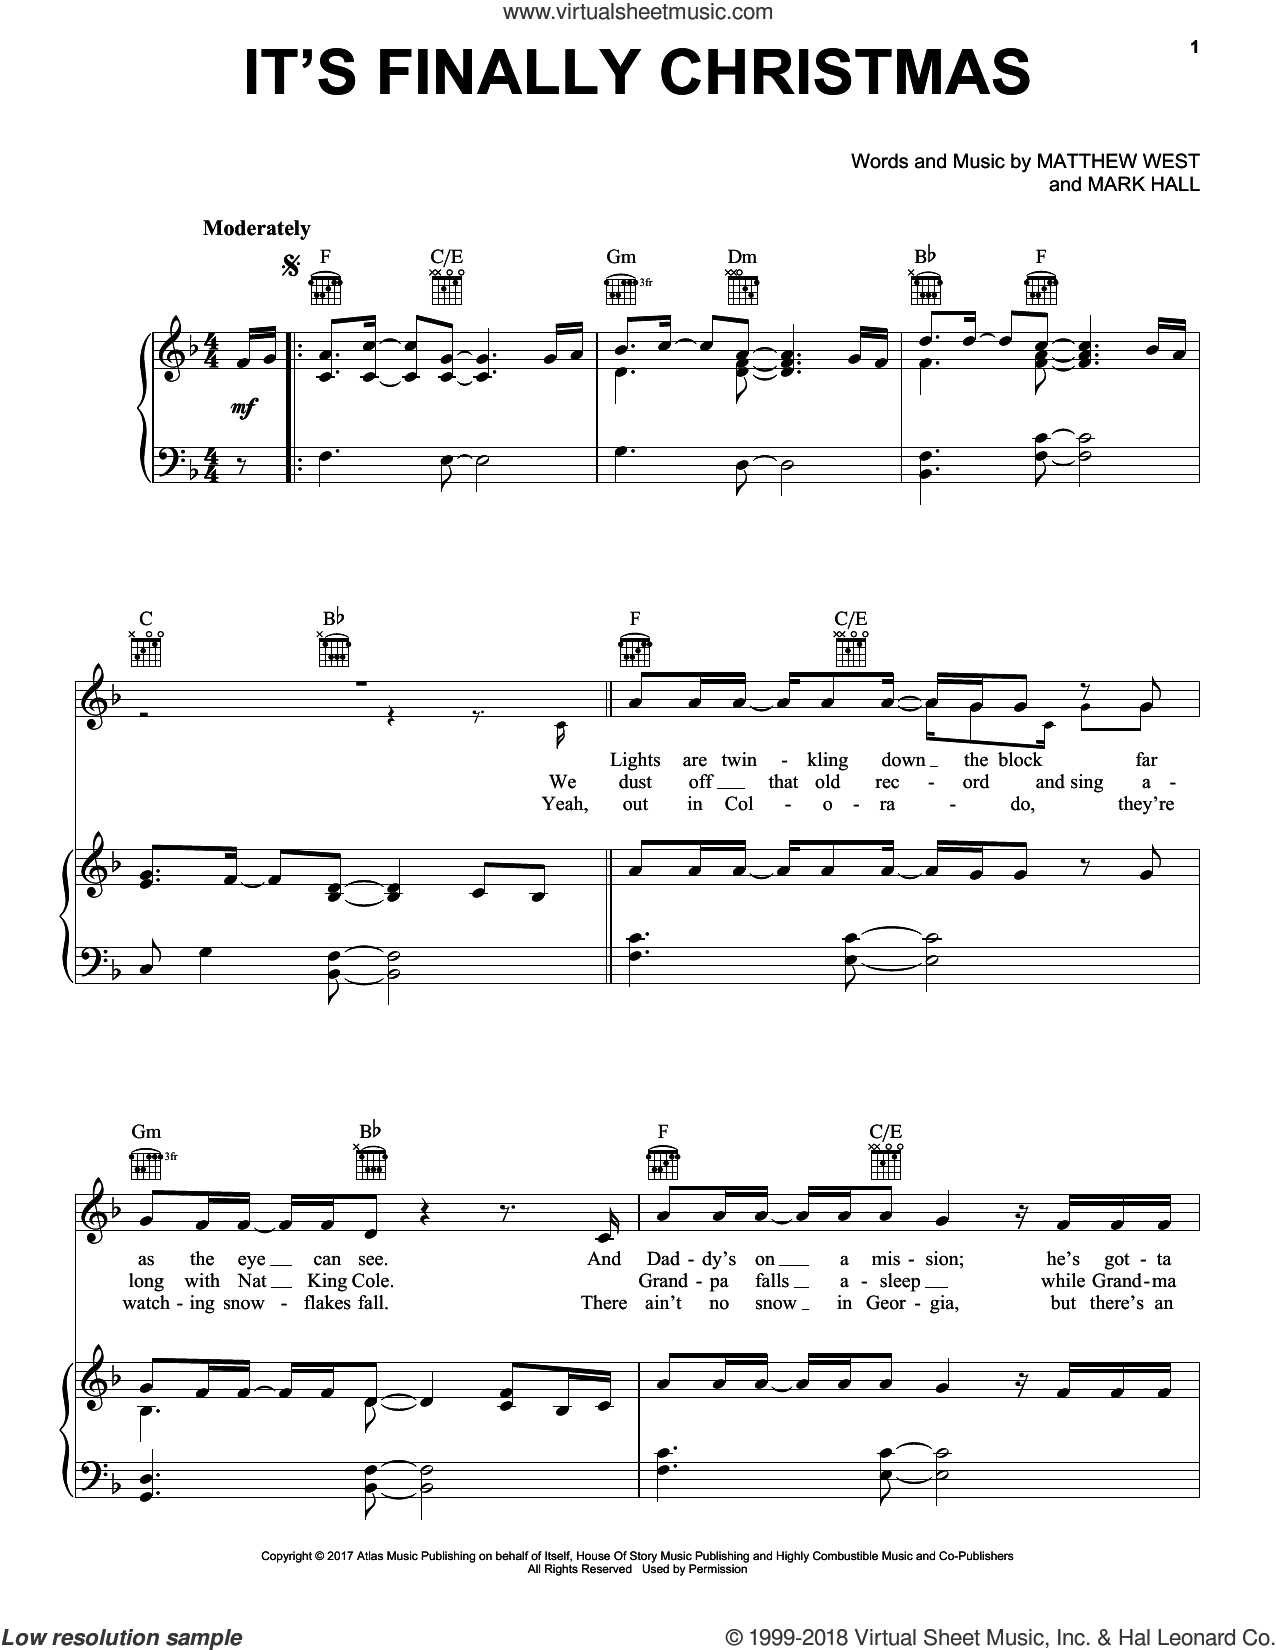 It's Finally Christmas sheet music for voice, piano or guitar by Casting Crowns, Mark Hall and Matthew West, intermediate skill level